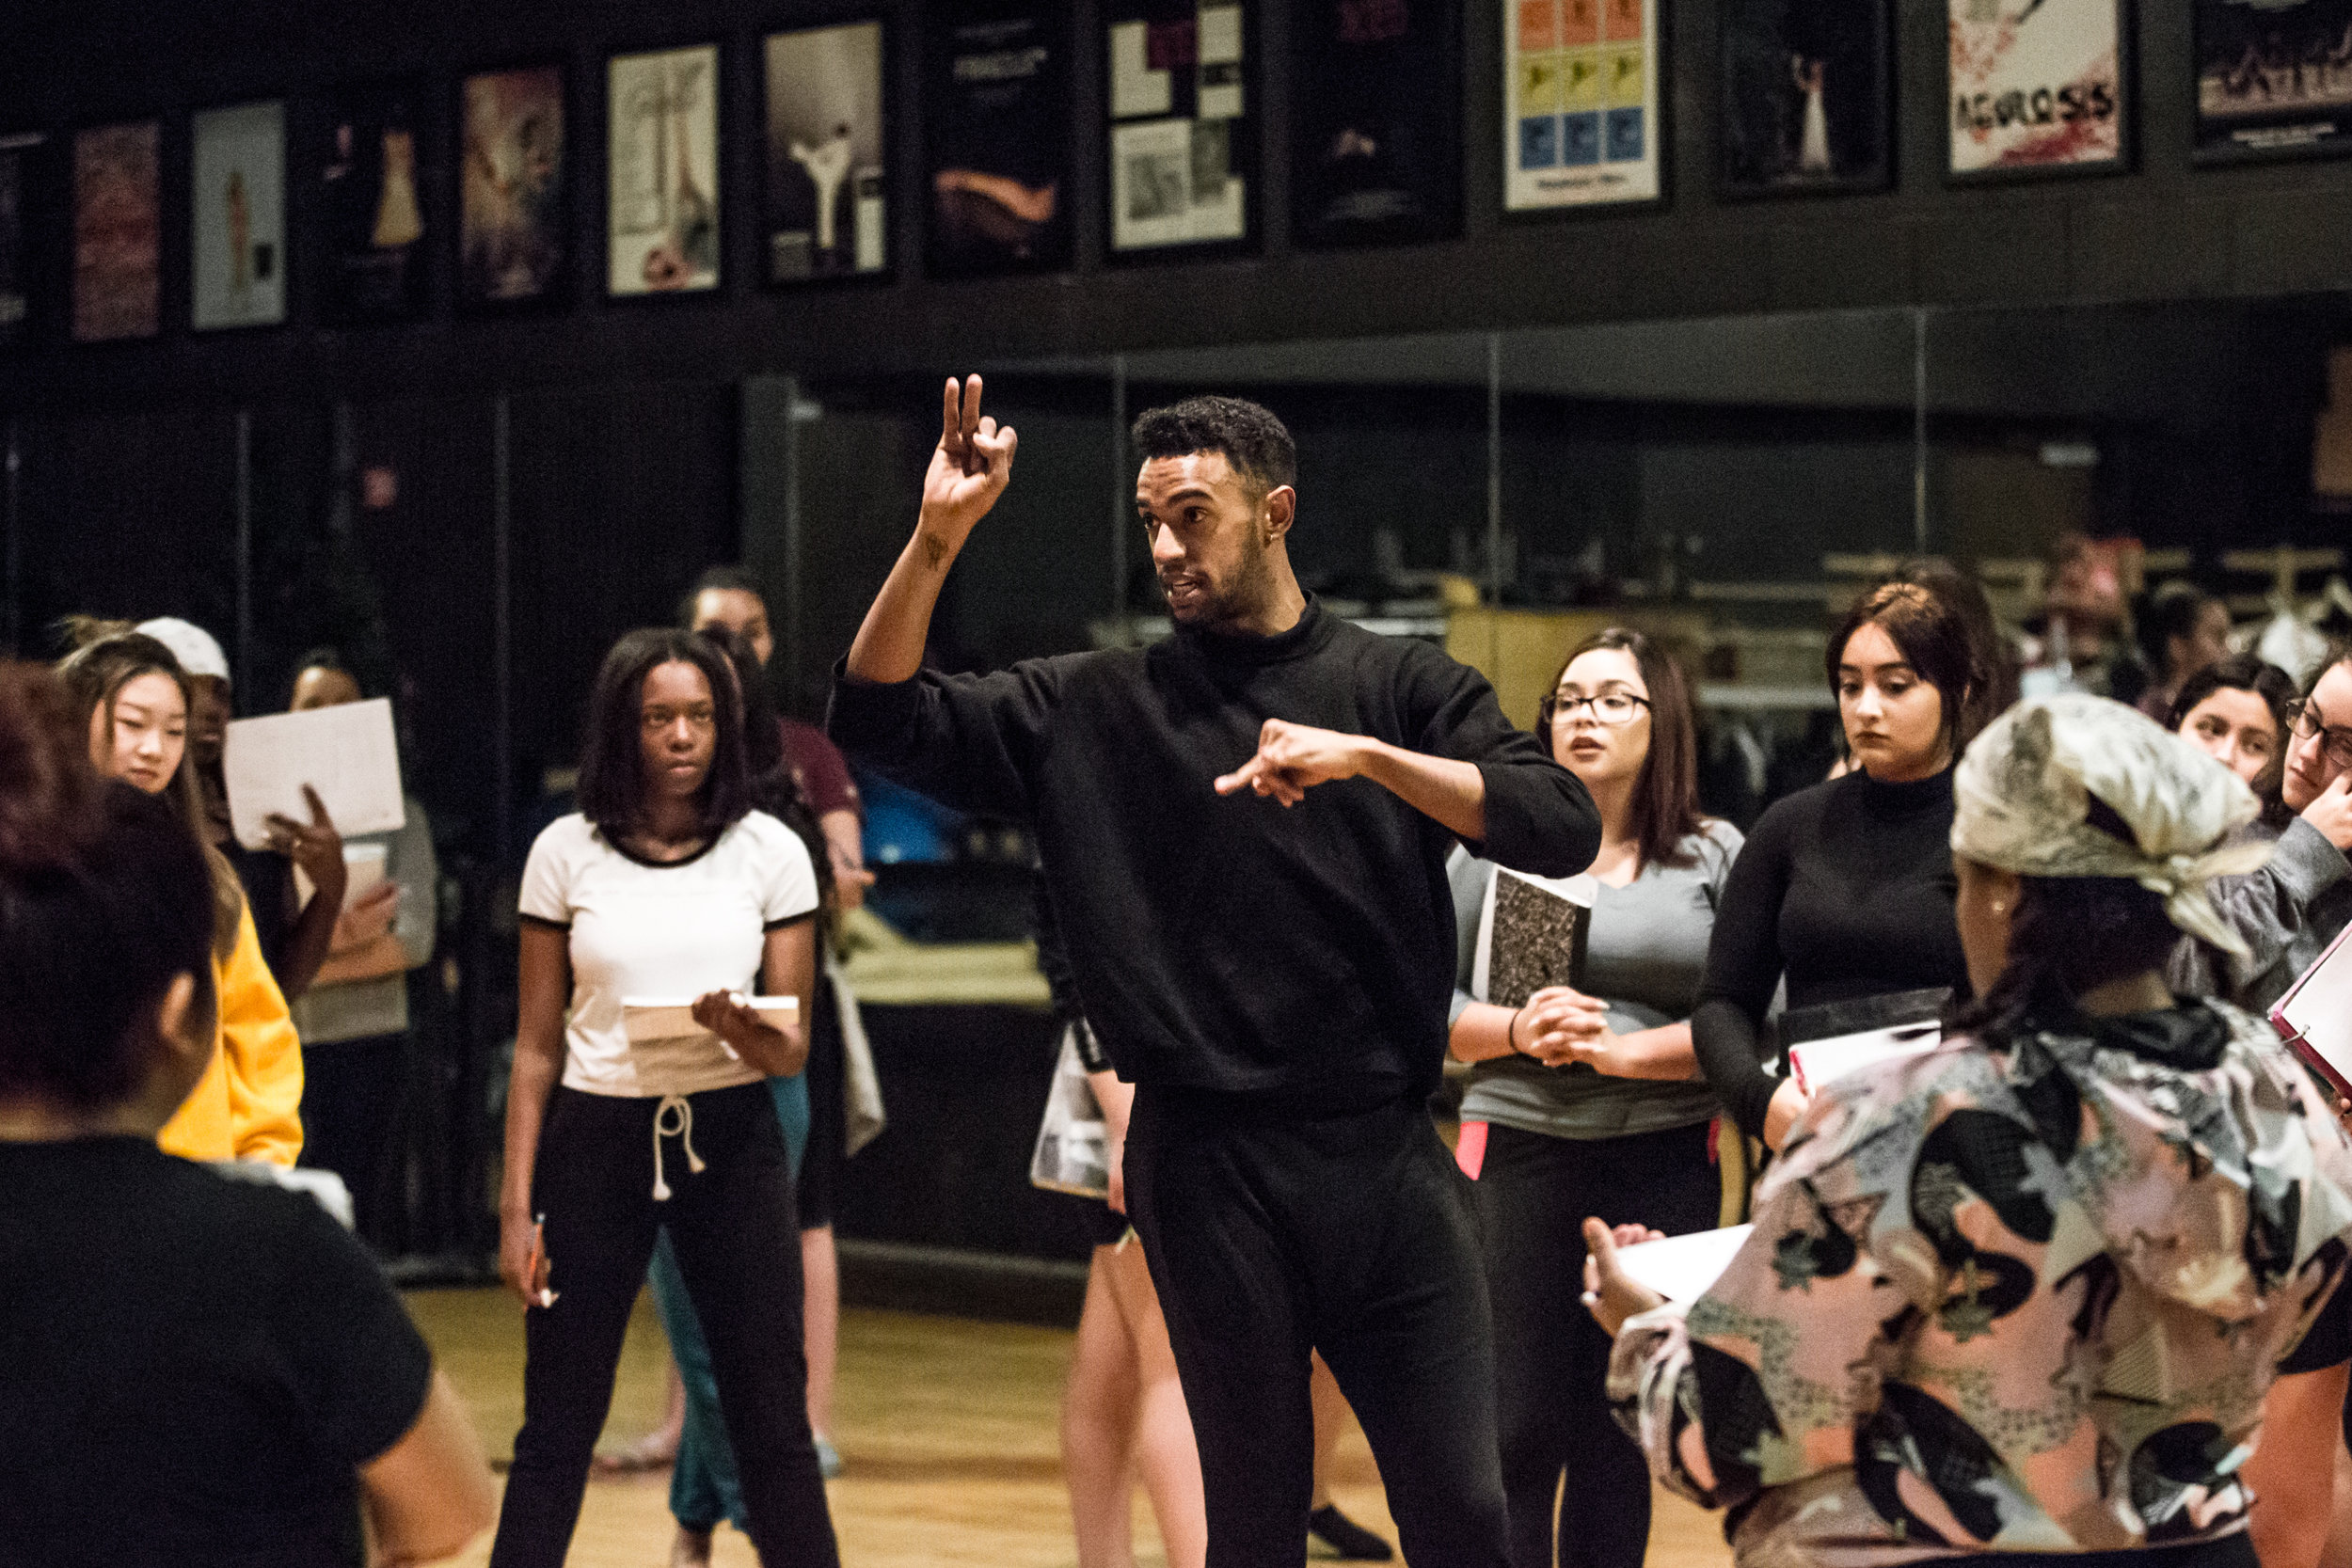 Jonathan Gonzalez (COCo. Dance Theatre) leads a workshop at Curie Metropolitan High School, November 2017, photos by Philip Dembinski